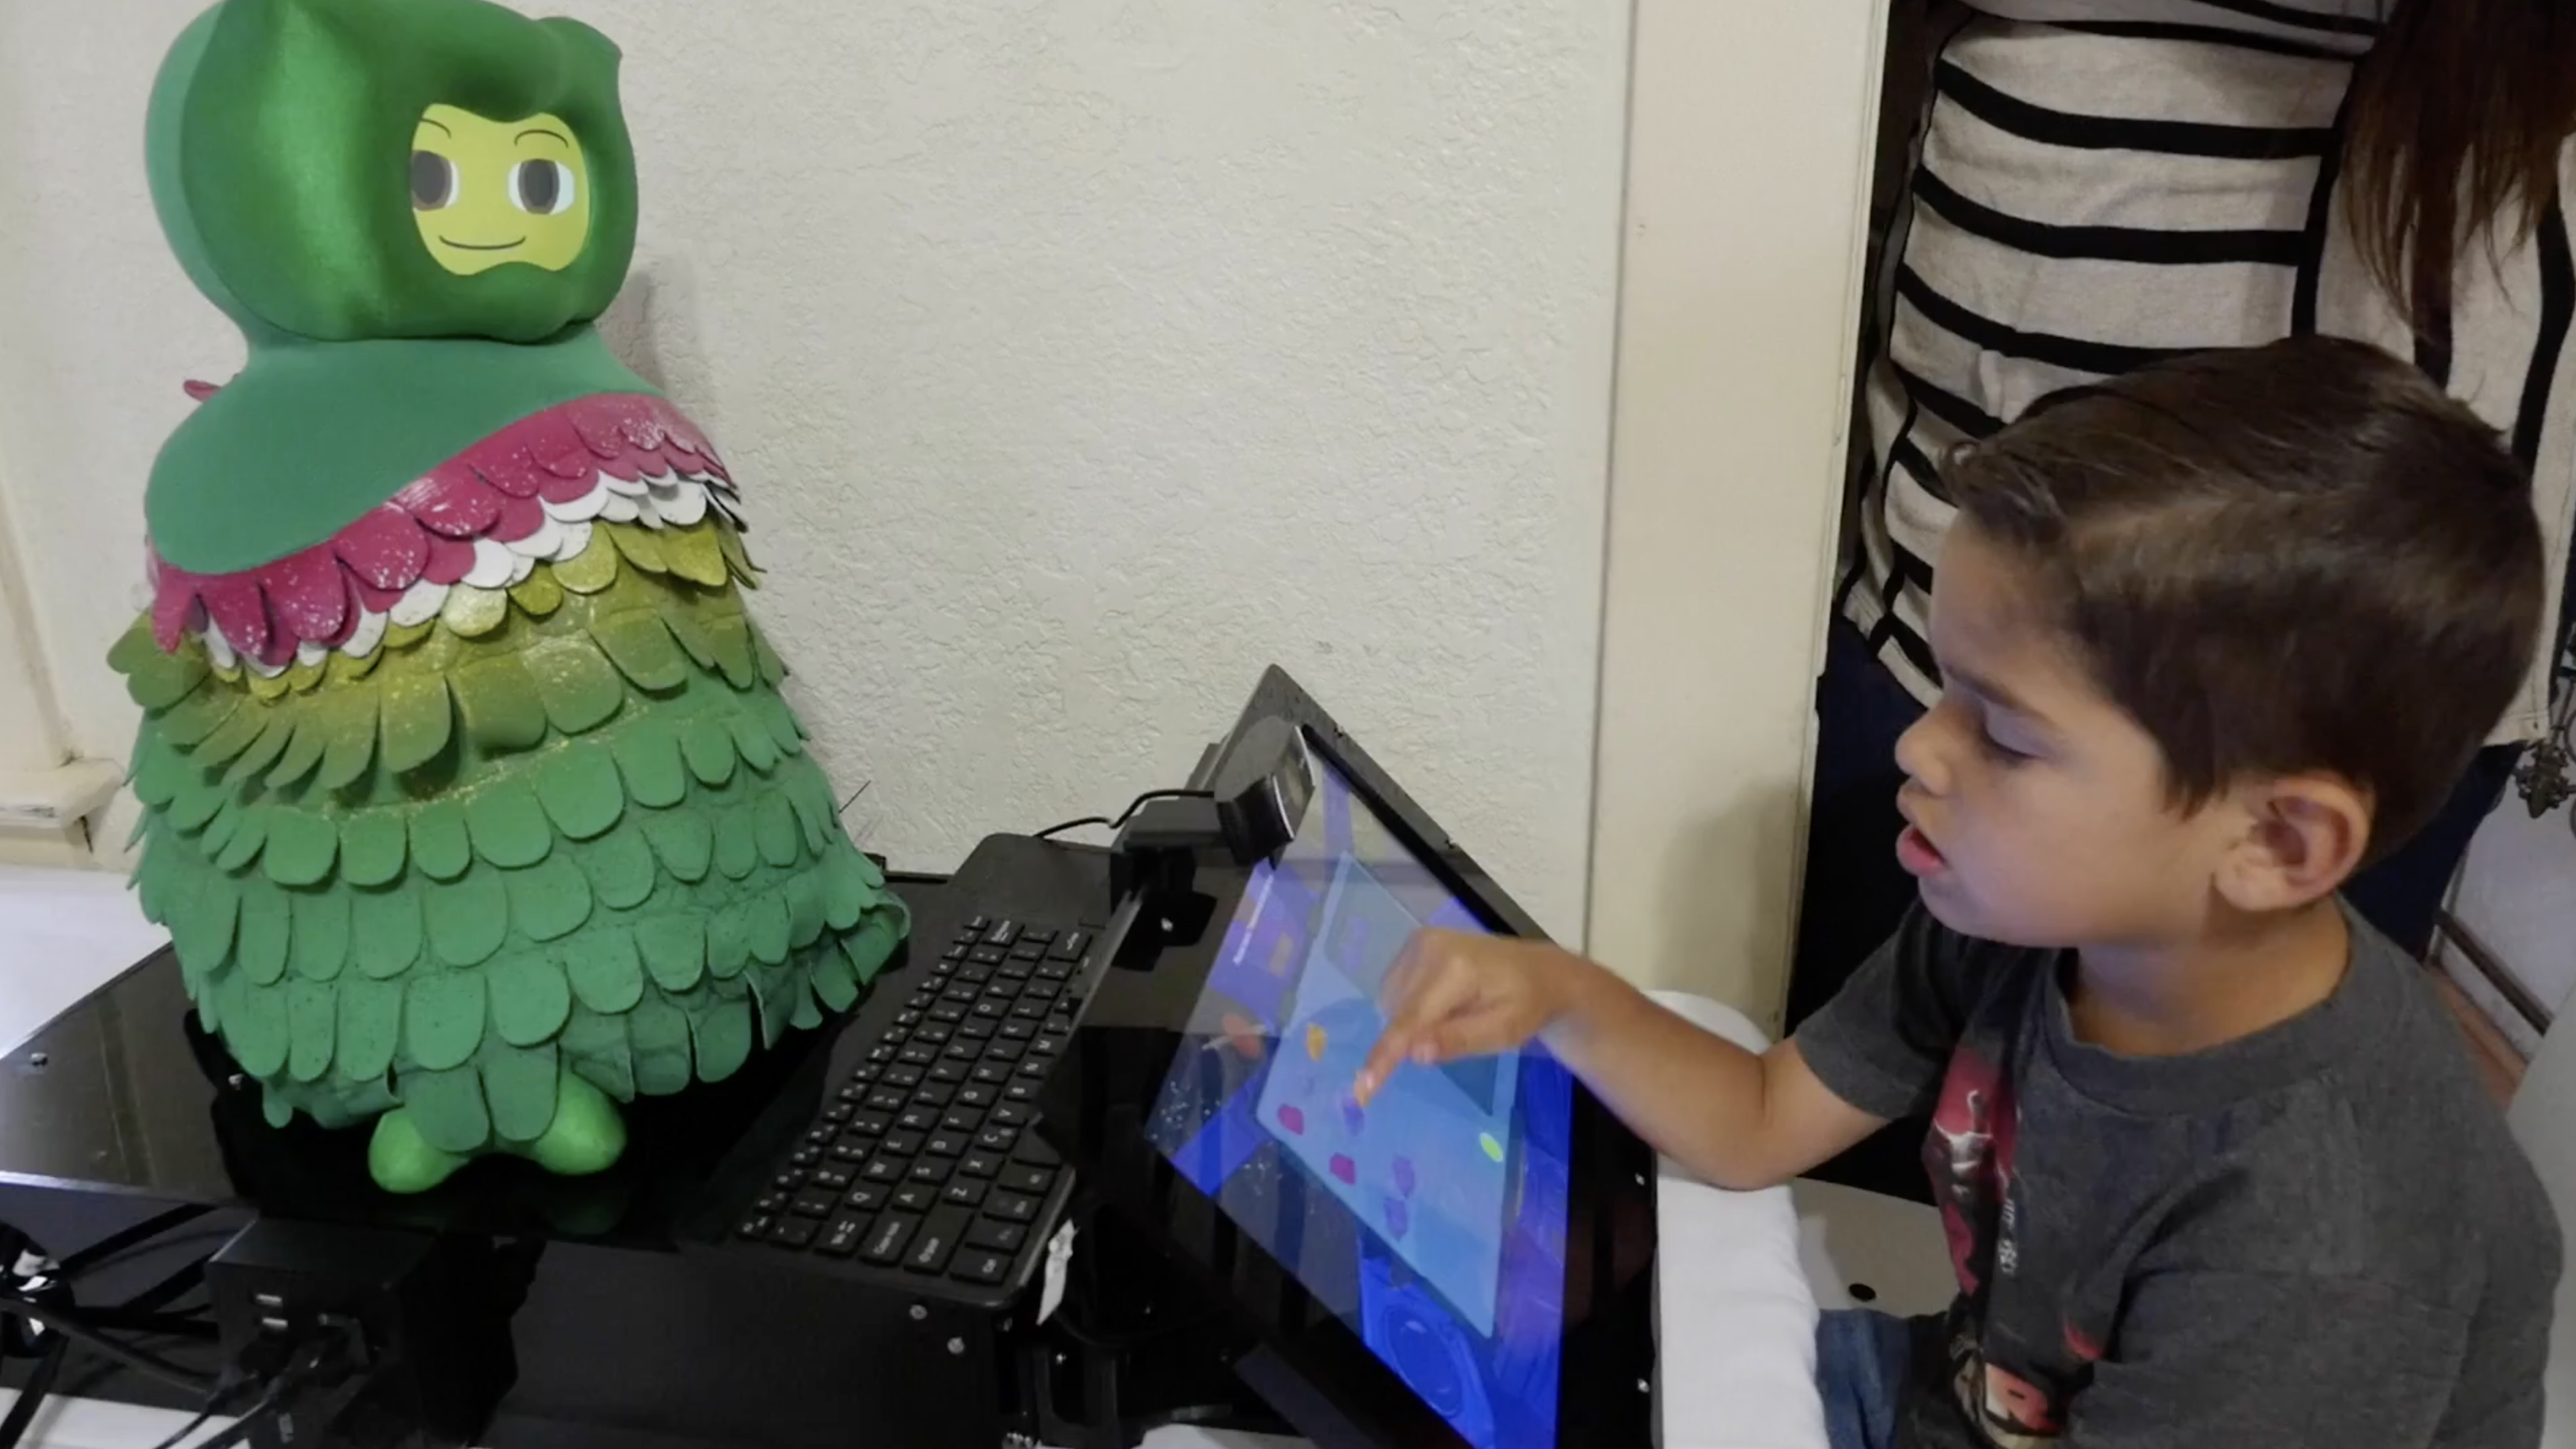 Robots that teach autistic kids social skills could help them develop